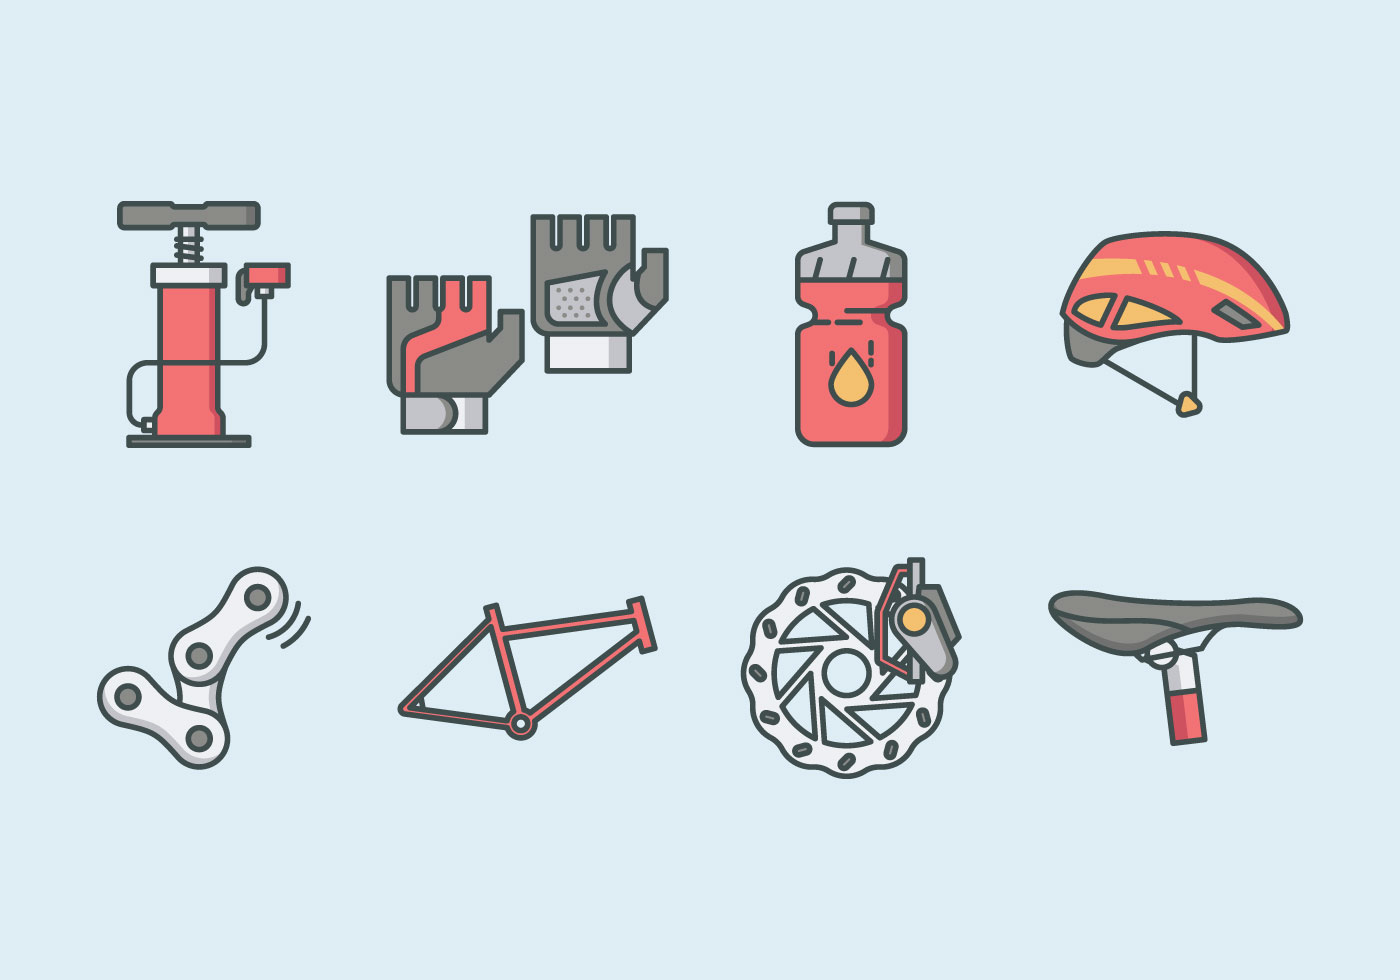 bicycle parts and accessories icon pack download free